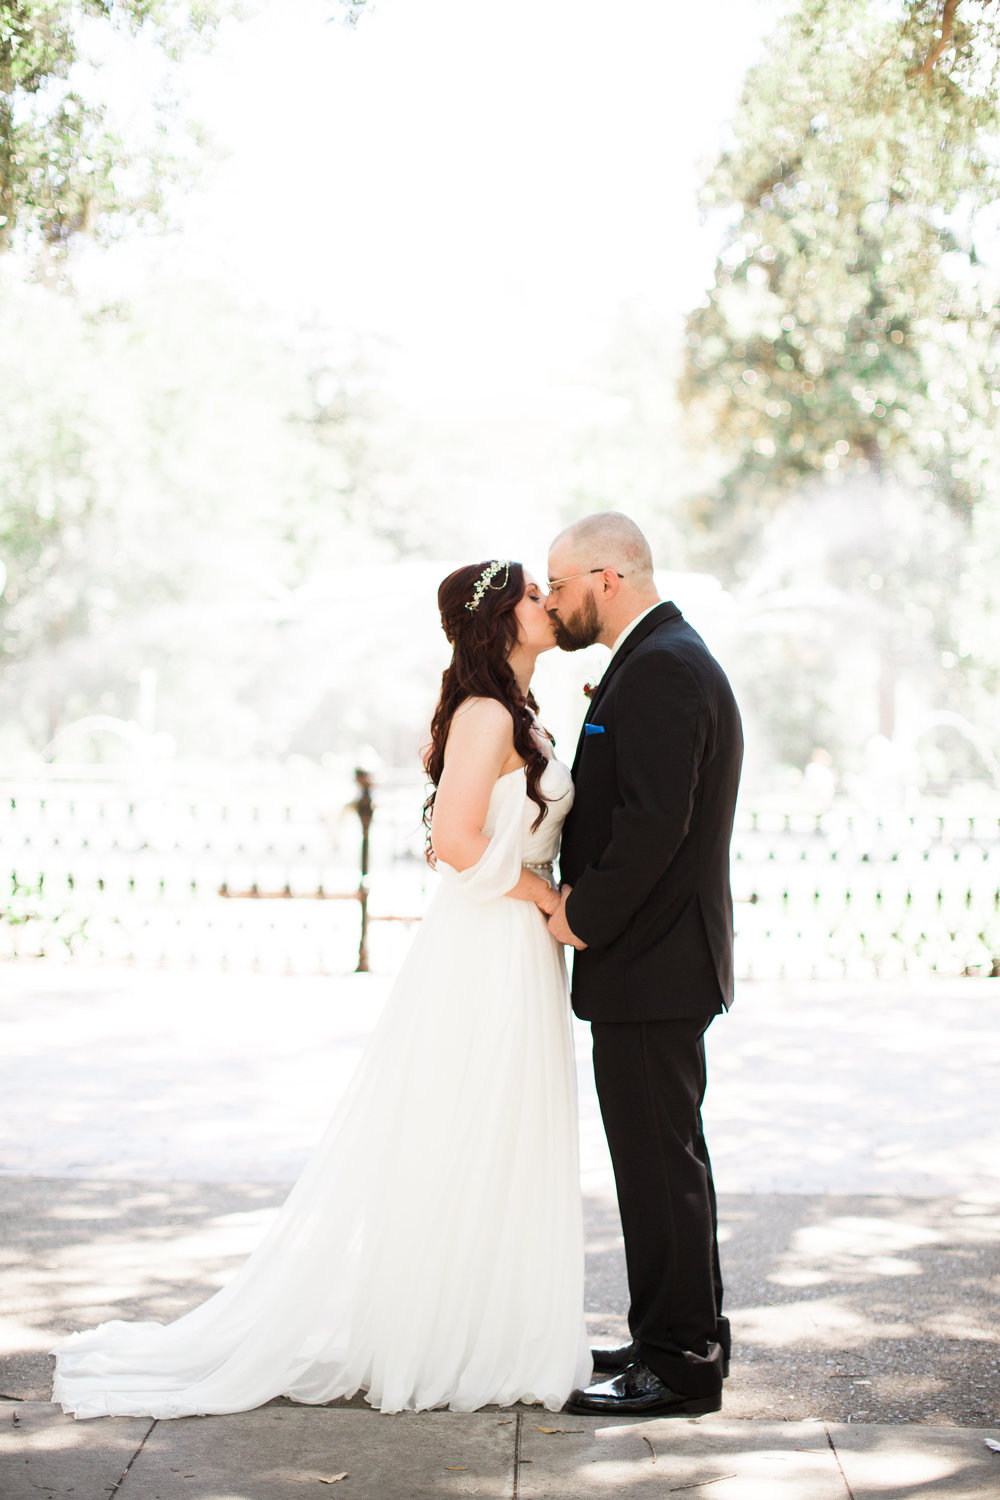 ari-merritt-photography-ivory-and-beau-bridal-boutique-sarah-seven-lafayette-savannah-florist-savannah-floral-designer-10-downing-savannah-wedding-southern-wedding-savannah-bridal-boutique-savannah-wedding-dresses-savannah-wedding-planner-5.jpg